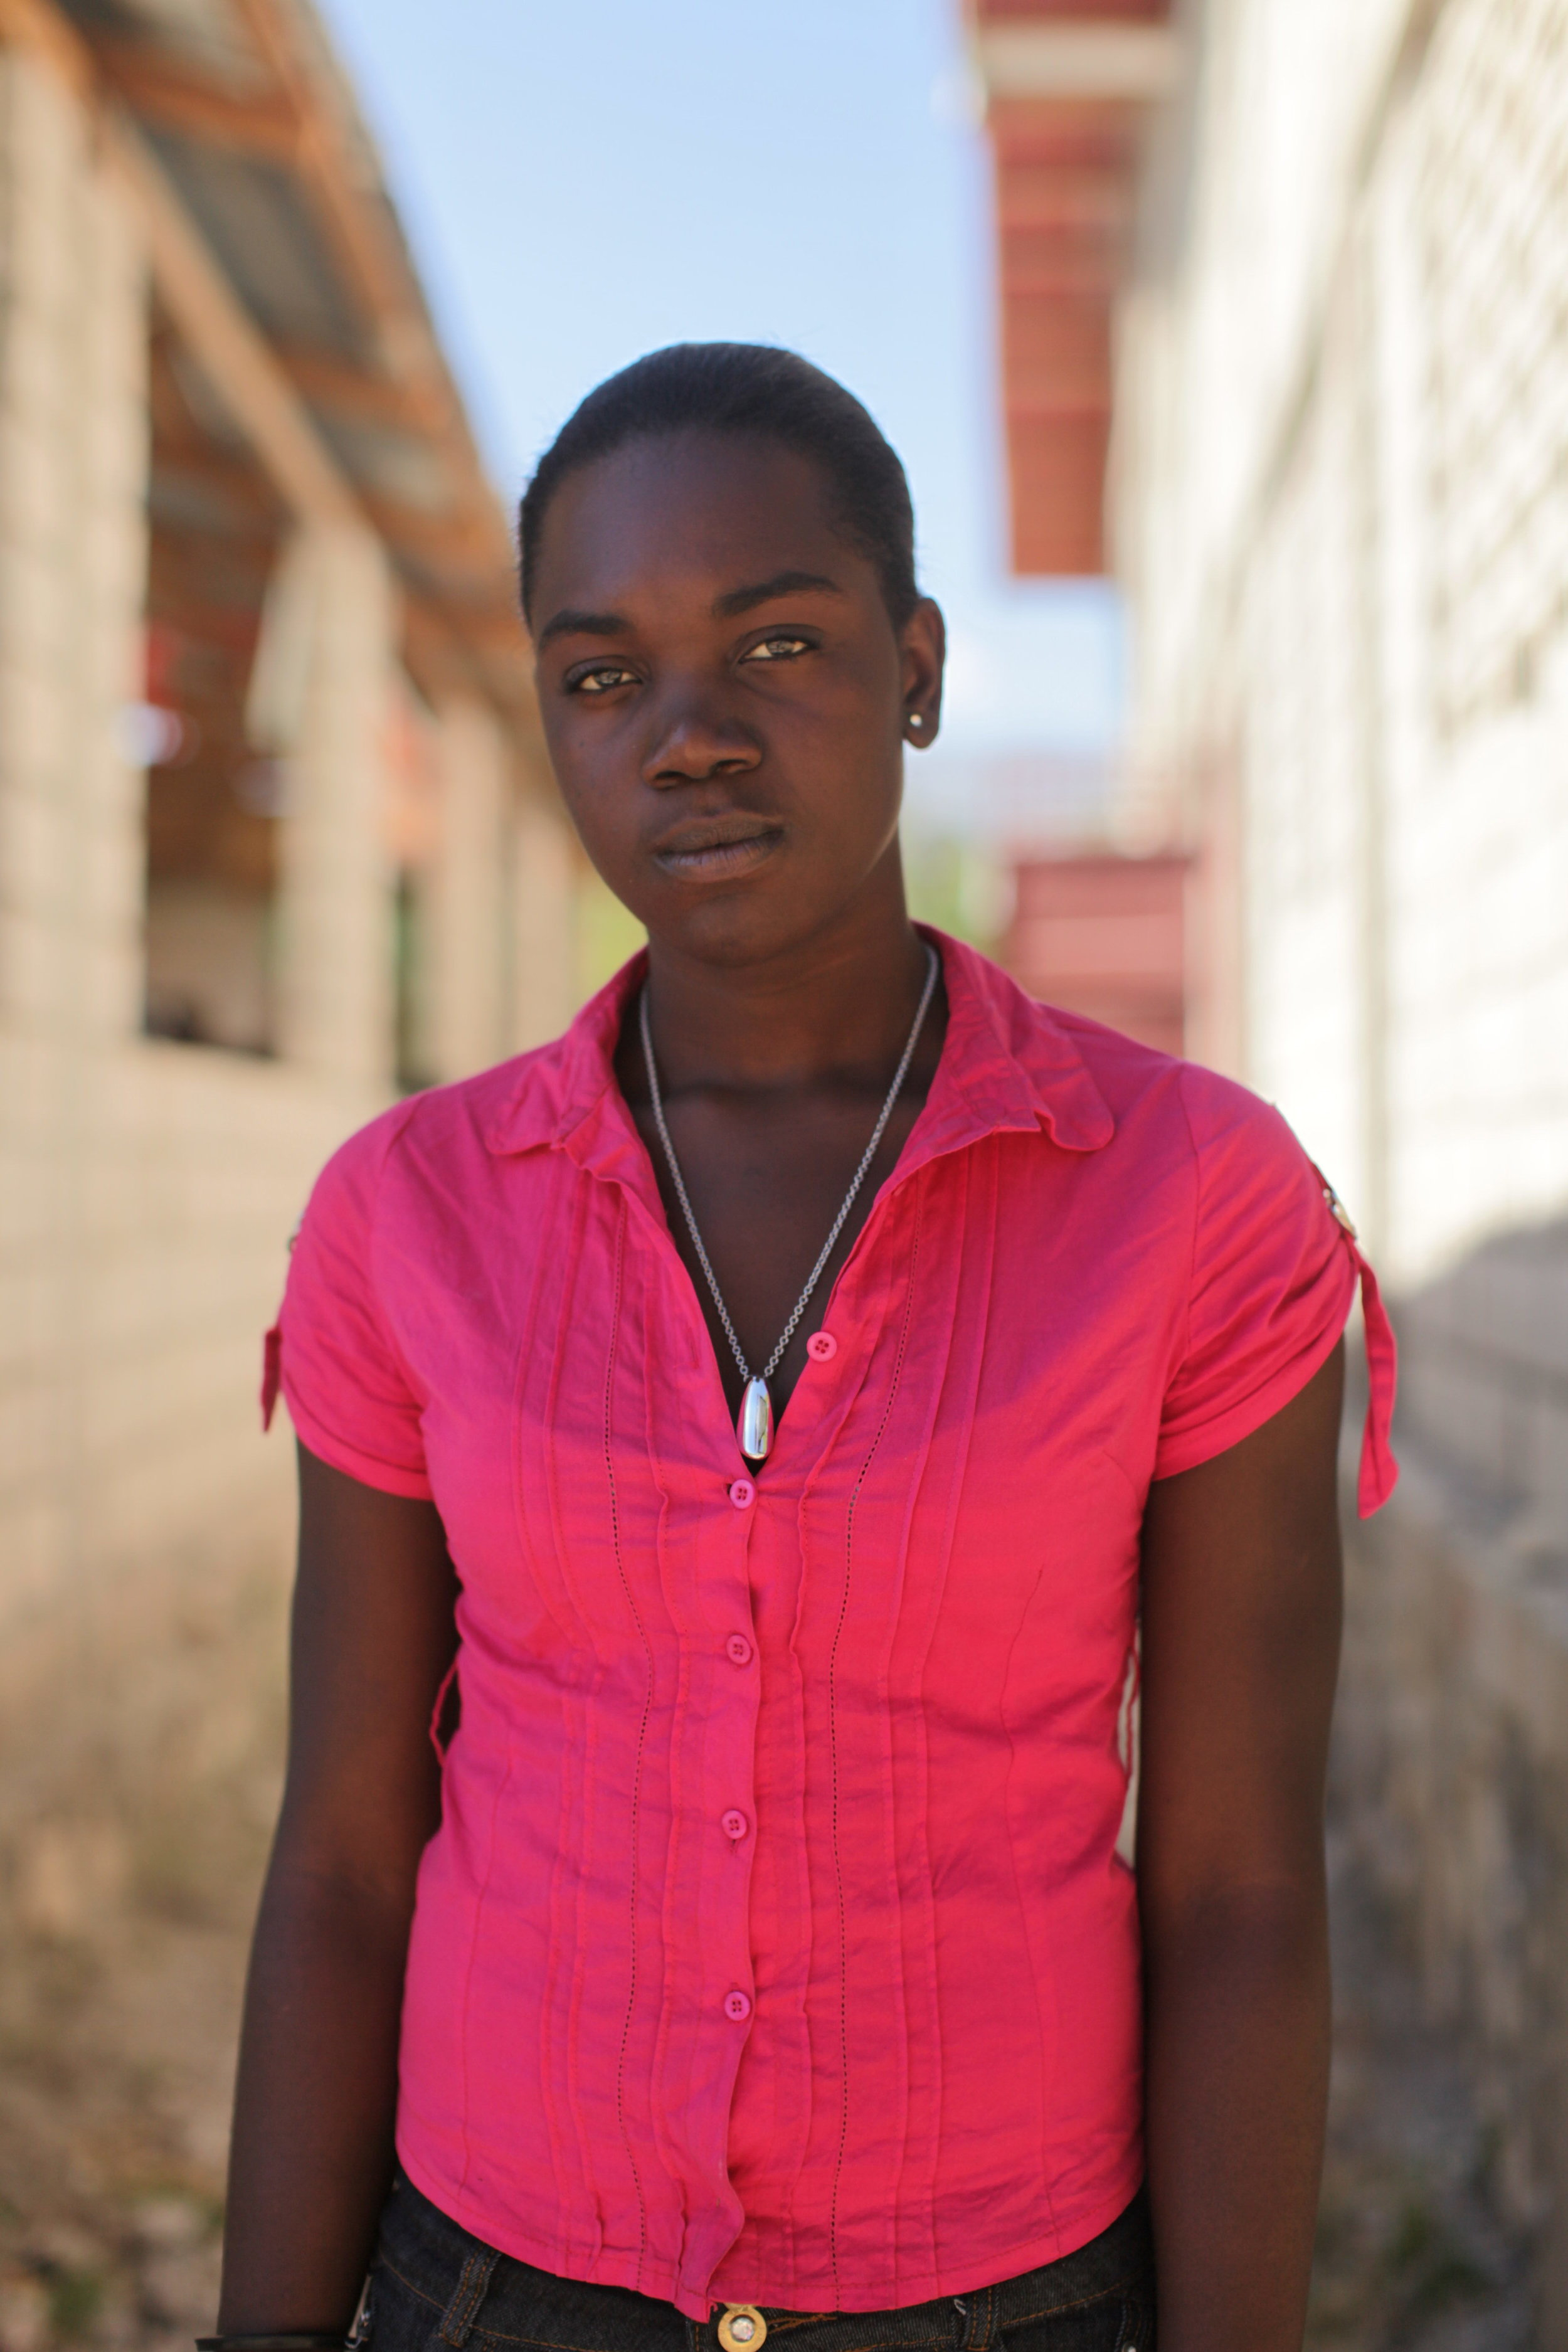 For Rosie Tannis, losing her home in the earthquake has led to new opportunities in Desarmes. Tannis was one of six young women enrolled in the construction trades in 2012-2013 at Group d'Accord Solidarité Action (GASA) in Desarmes.